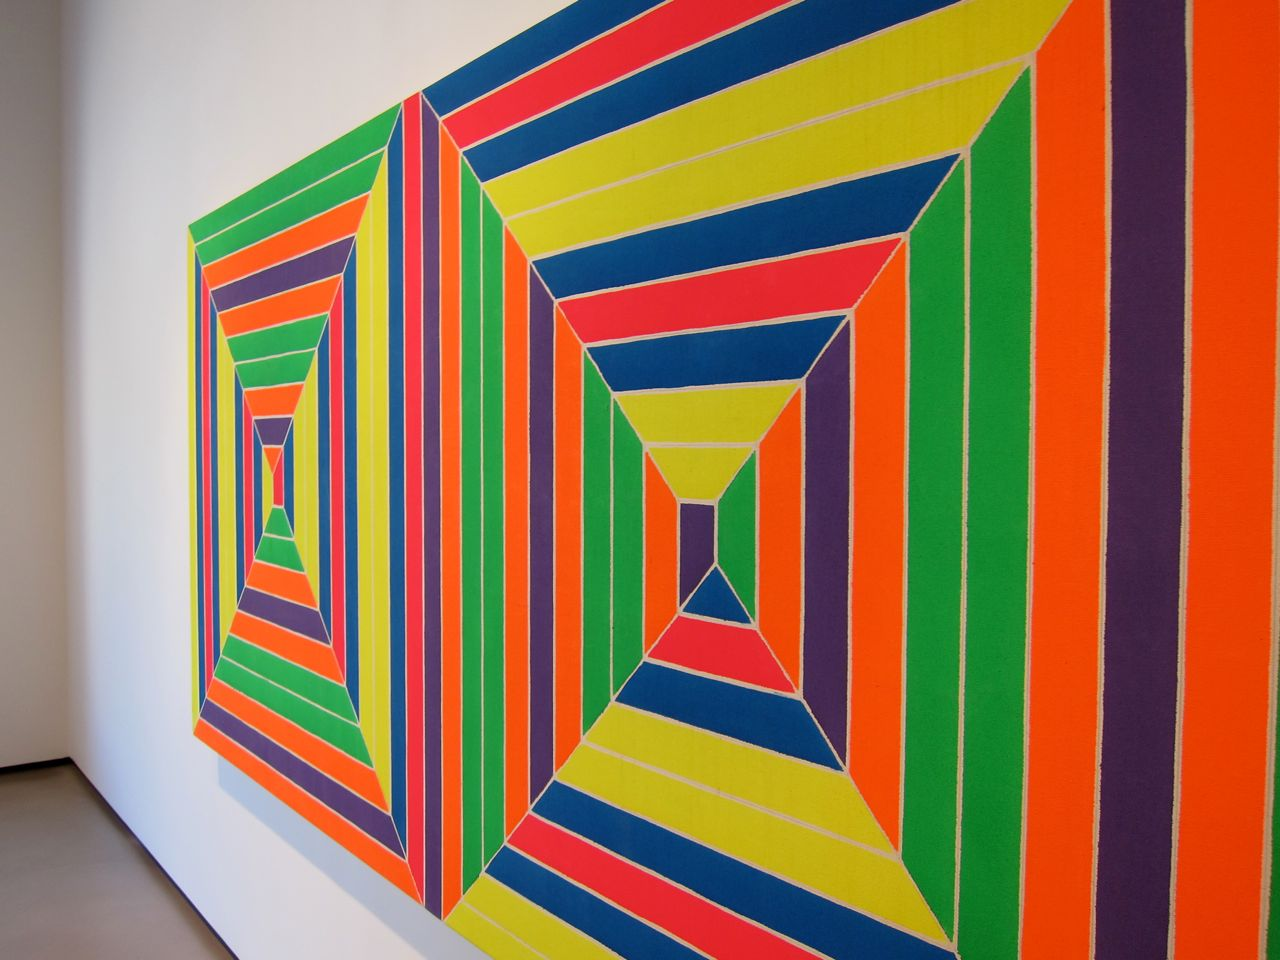 frank stellar Frank stella (b 1936, malden, massachusetts) has had a long and prodigious career his early workremains dear to art critics andhistorians who define stella's minimalistpaintings of the late 1950s.